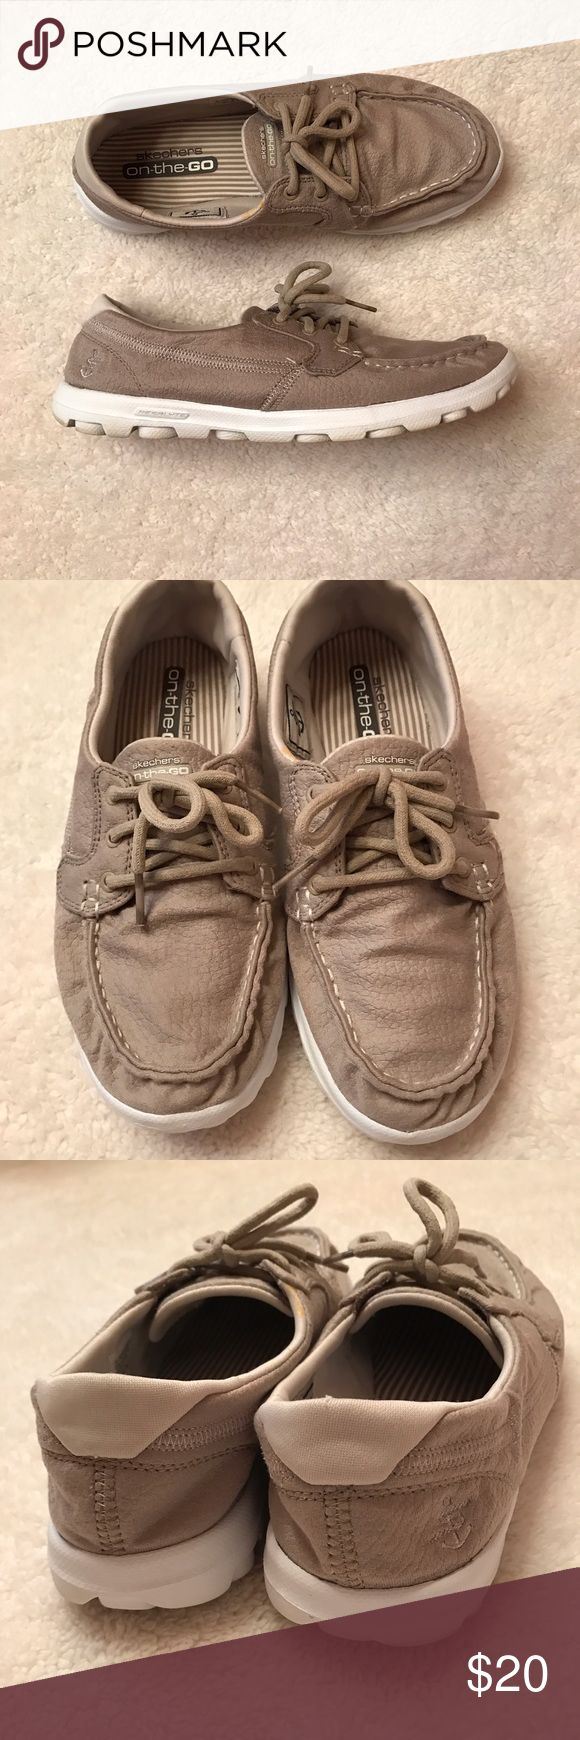 Skechers on the go boat shoe Great used condition super lightweight and comfortable Skechers Shoes Flats & Loafers